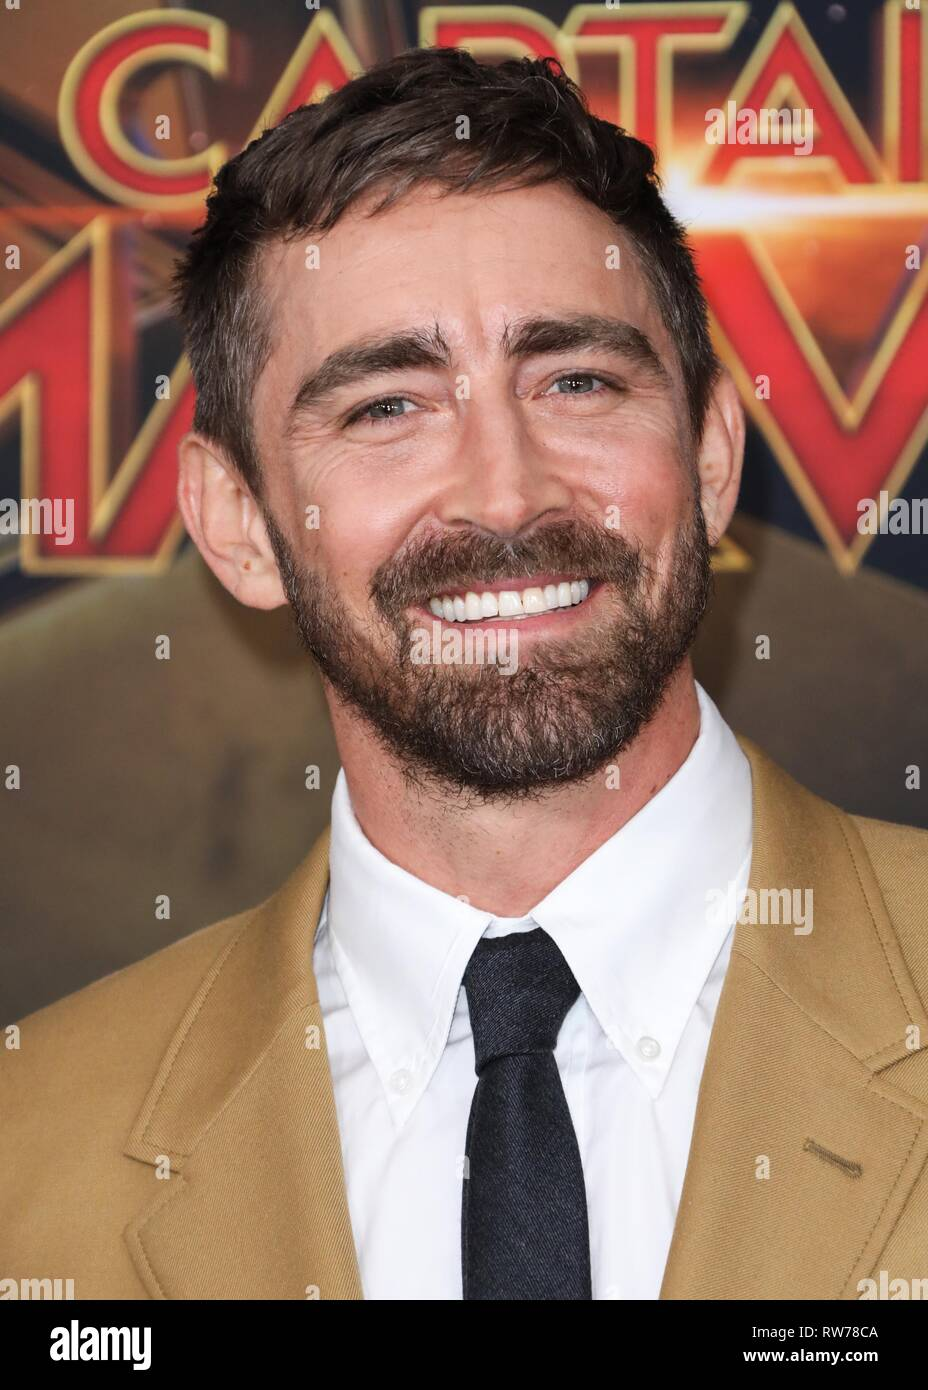 HOLLYWOOD, LOS ANGELES, CA, USA - MARCH 04: Actor Lee Pace